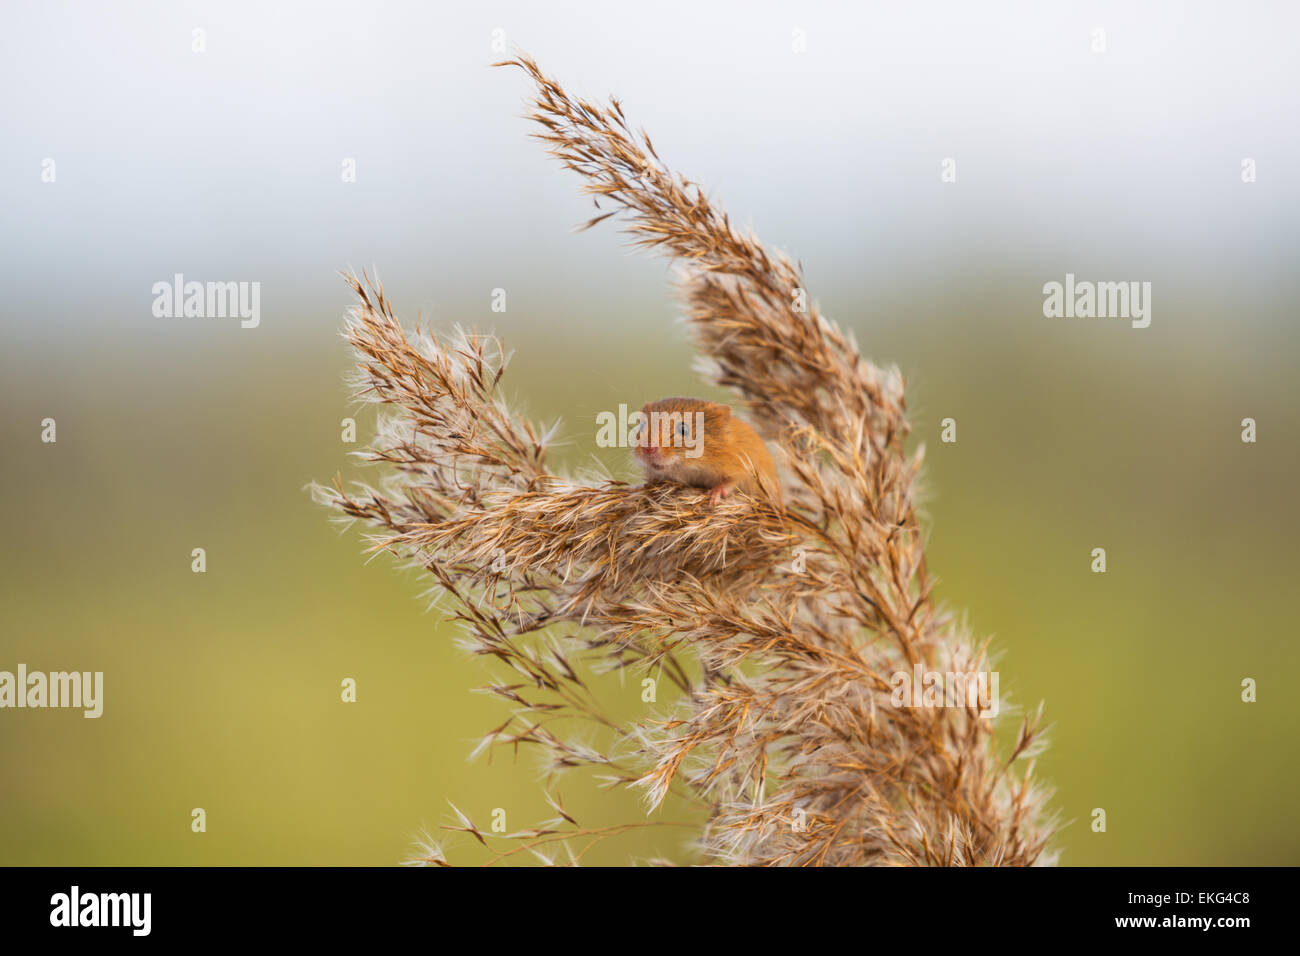 Harvest mouse on wheat - Stock Image